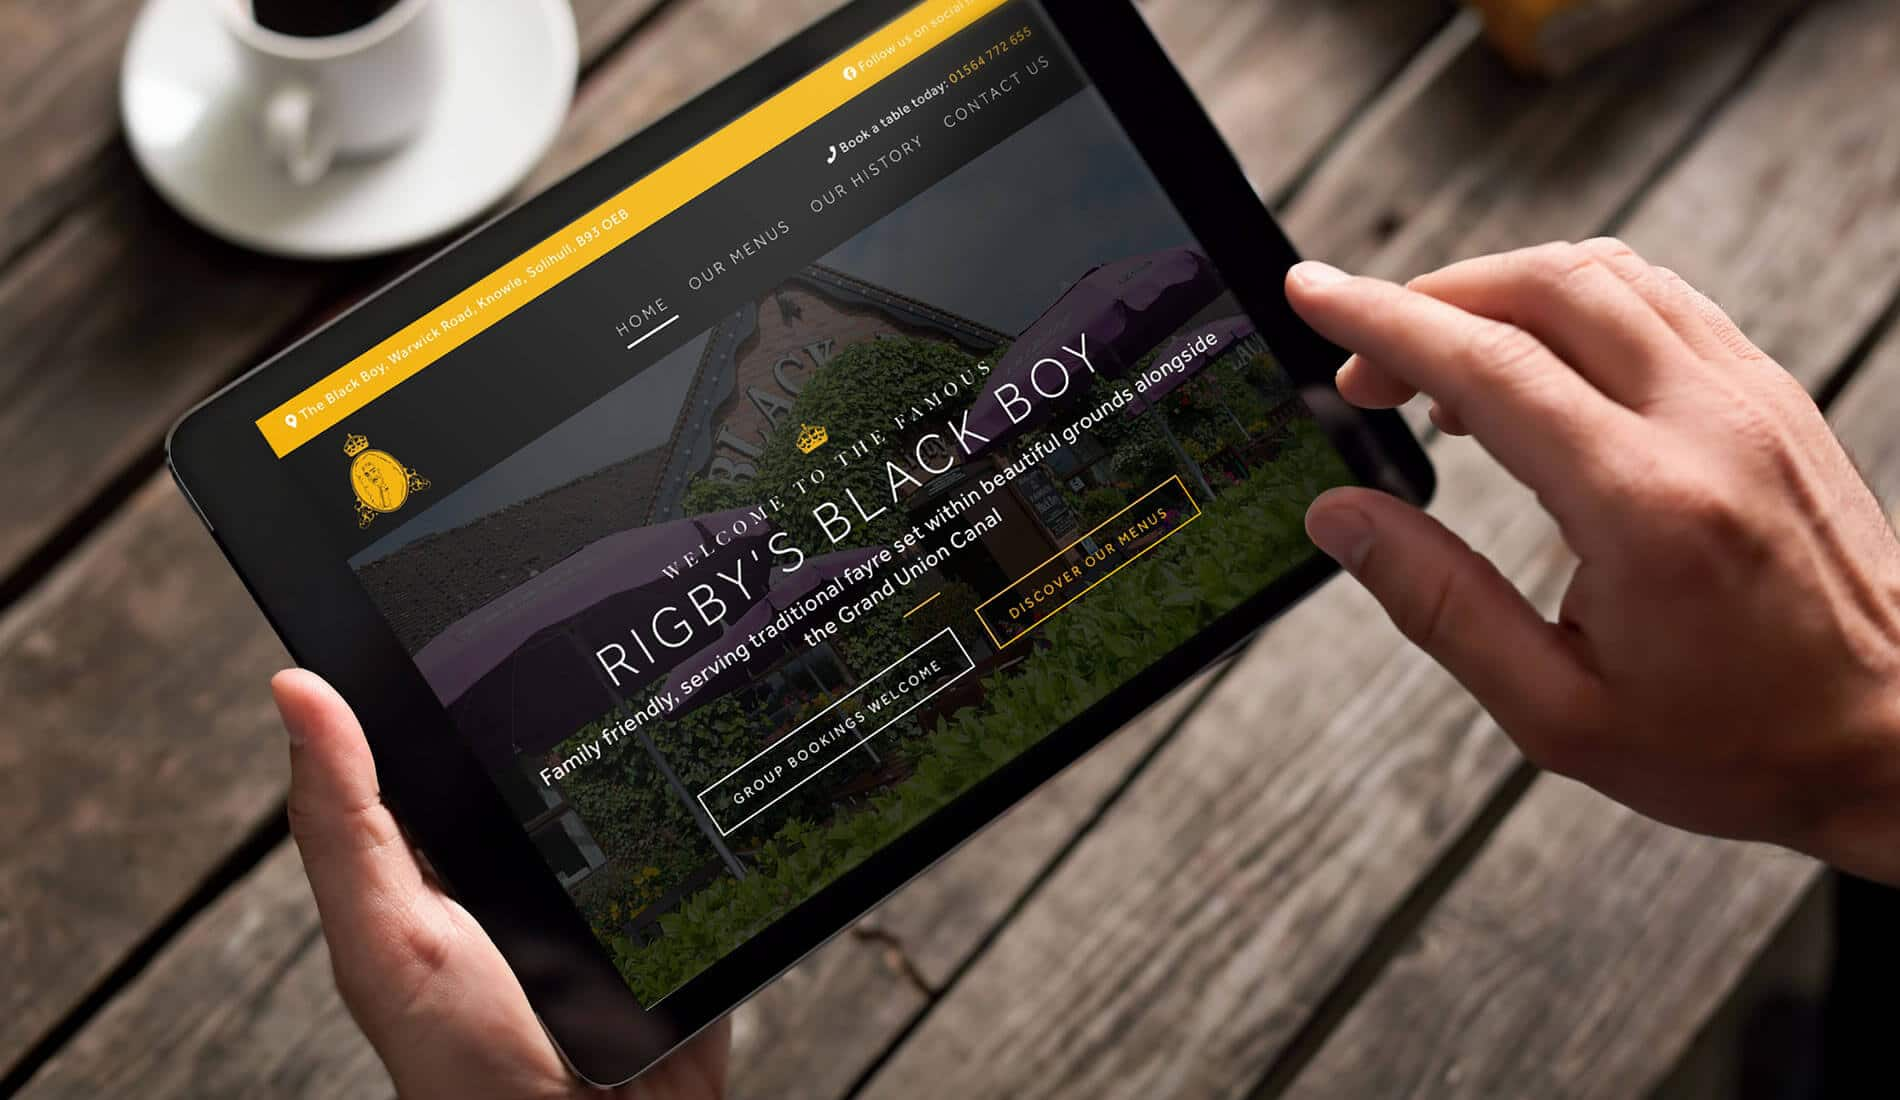 Blackboy website bespoke website design on ipad